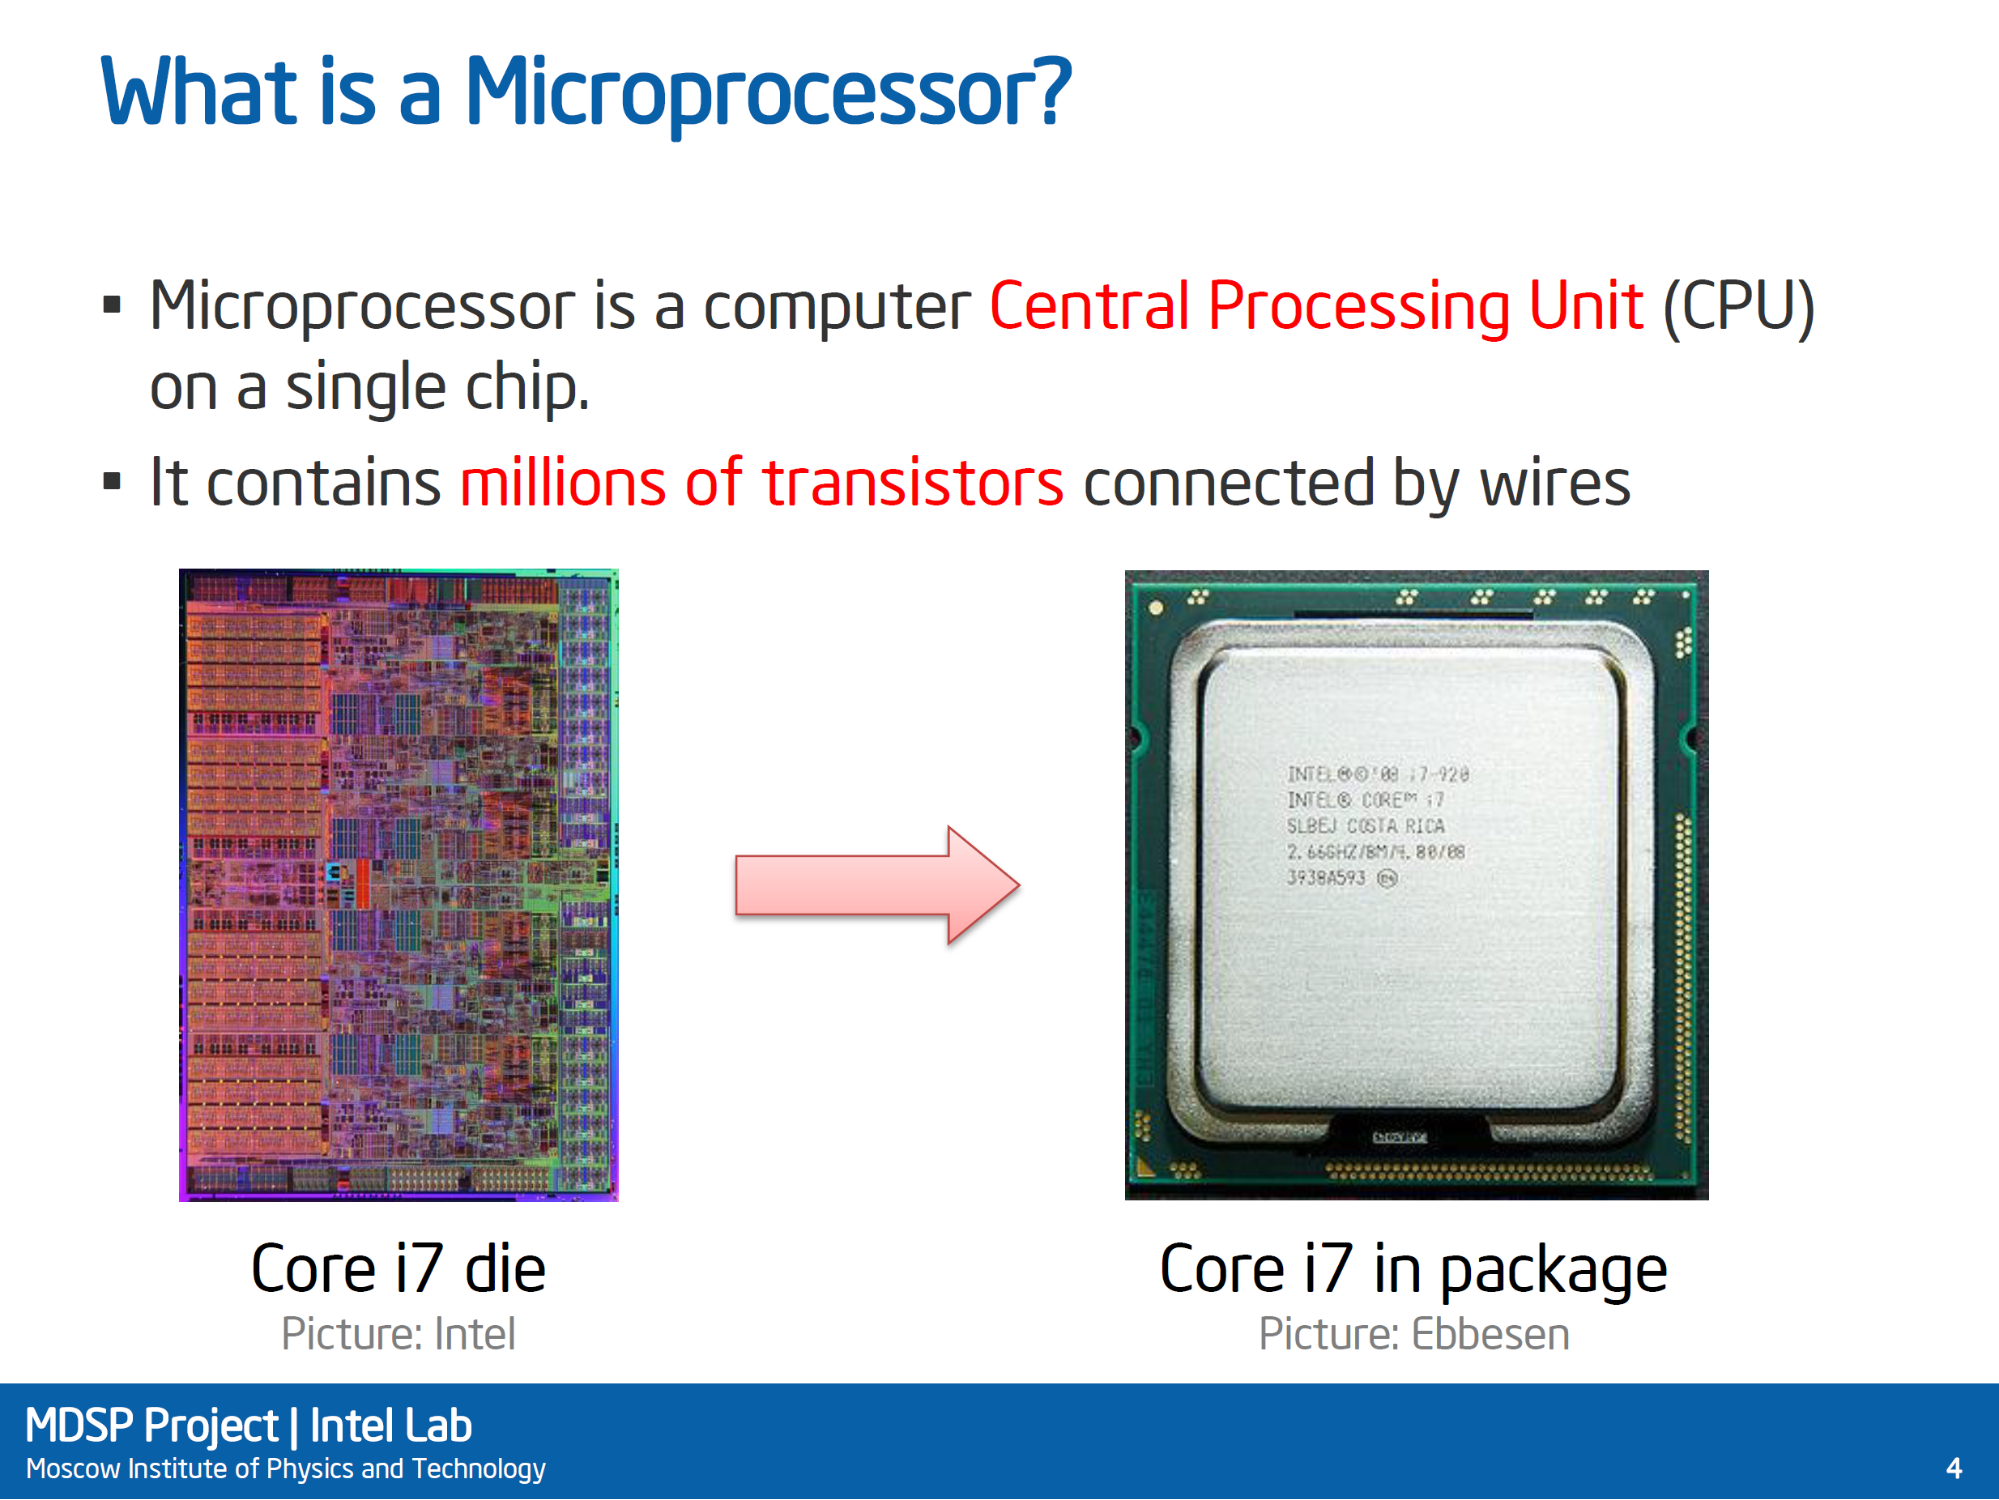 照片中提到了What is a Microprocessor?、Microprocessor is a computer Central Processing Unit (CPU)、on a single chip.,包含了電腦、微處理器、線、產品、儀表